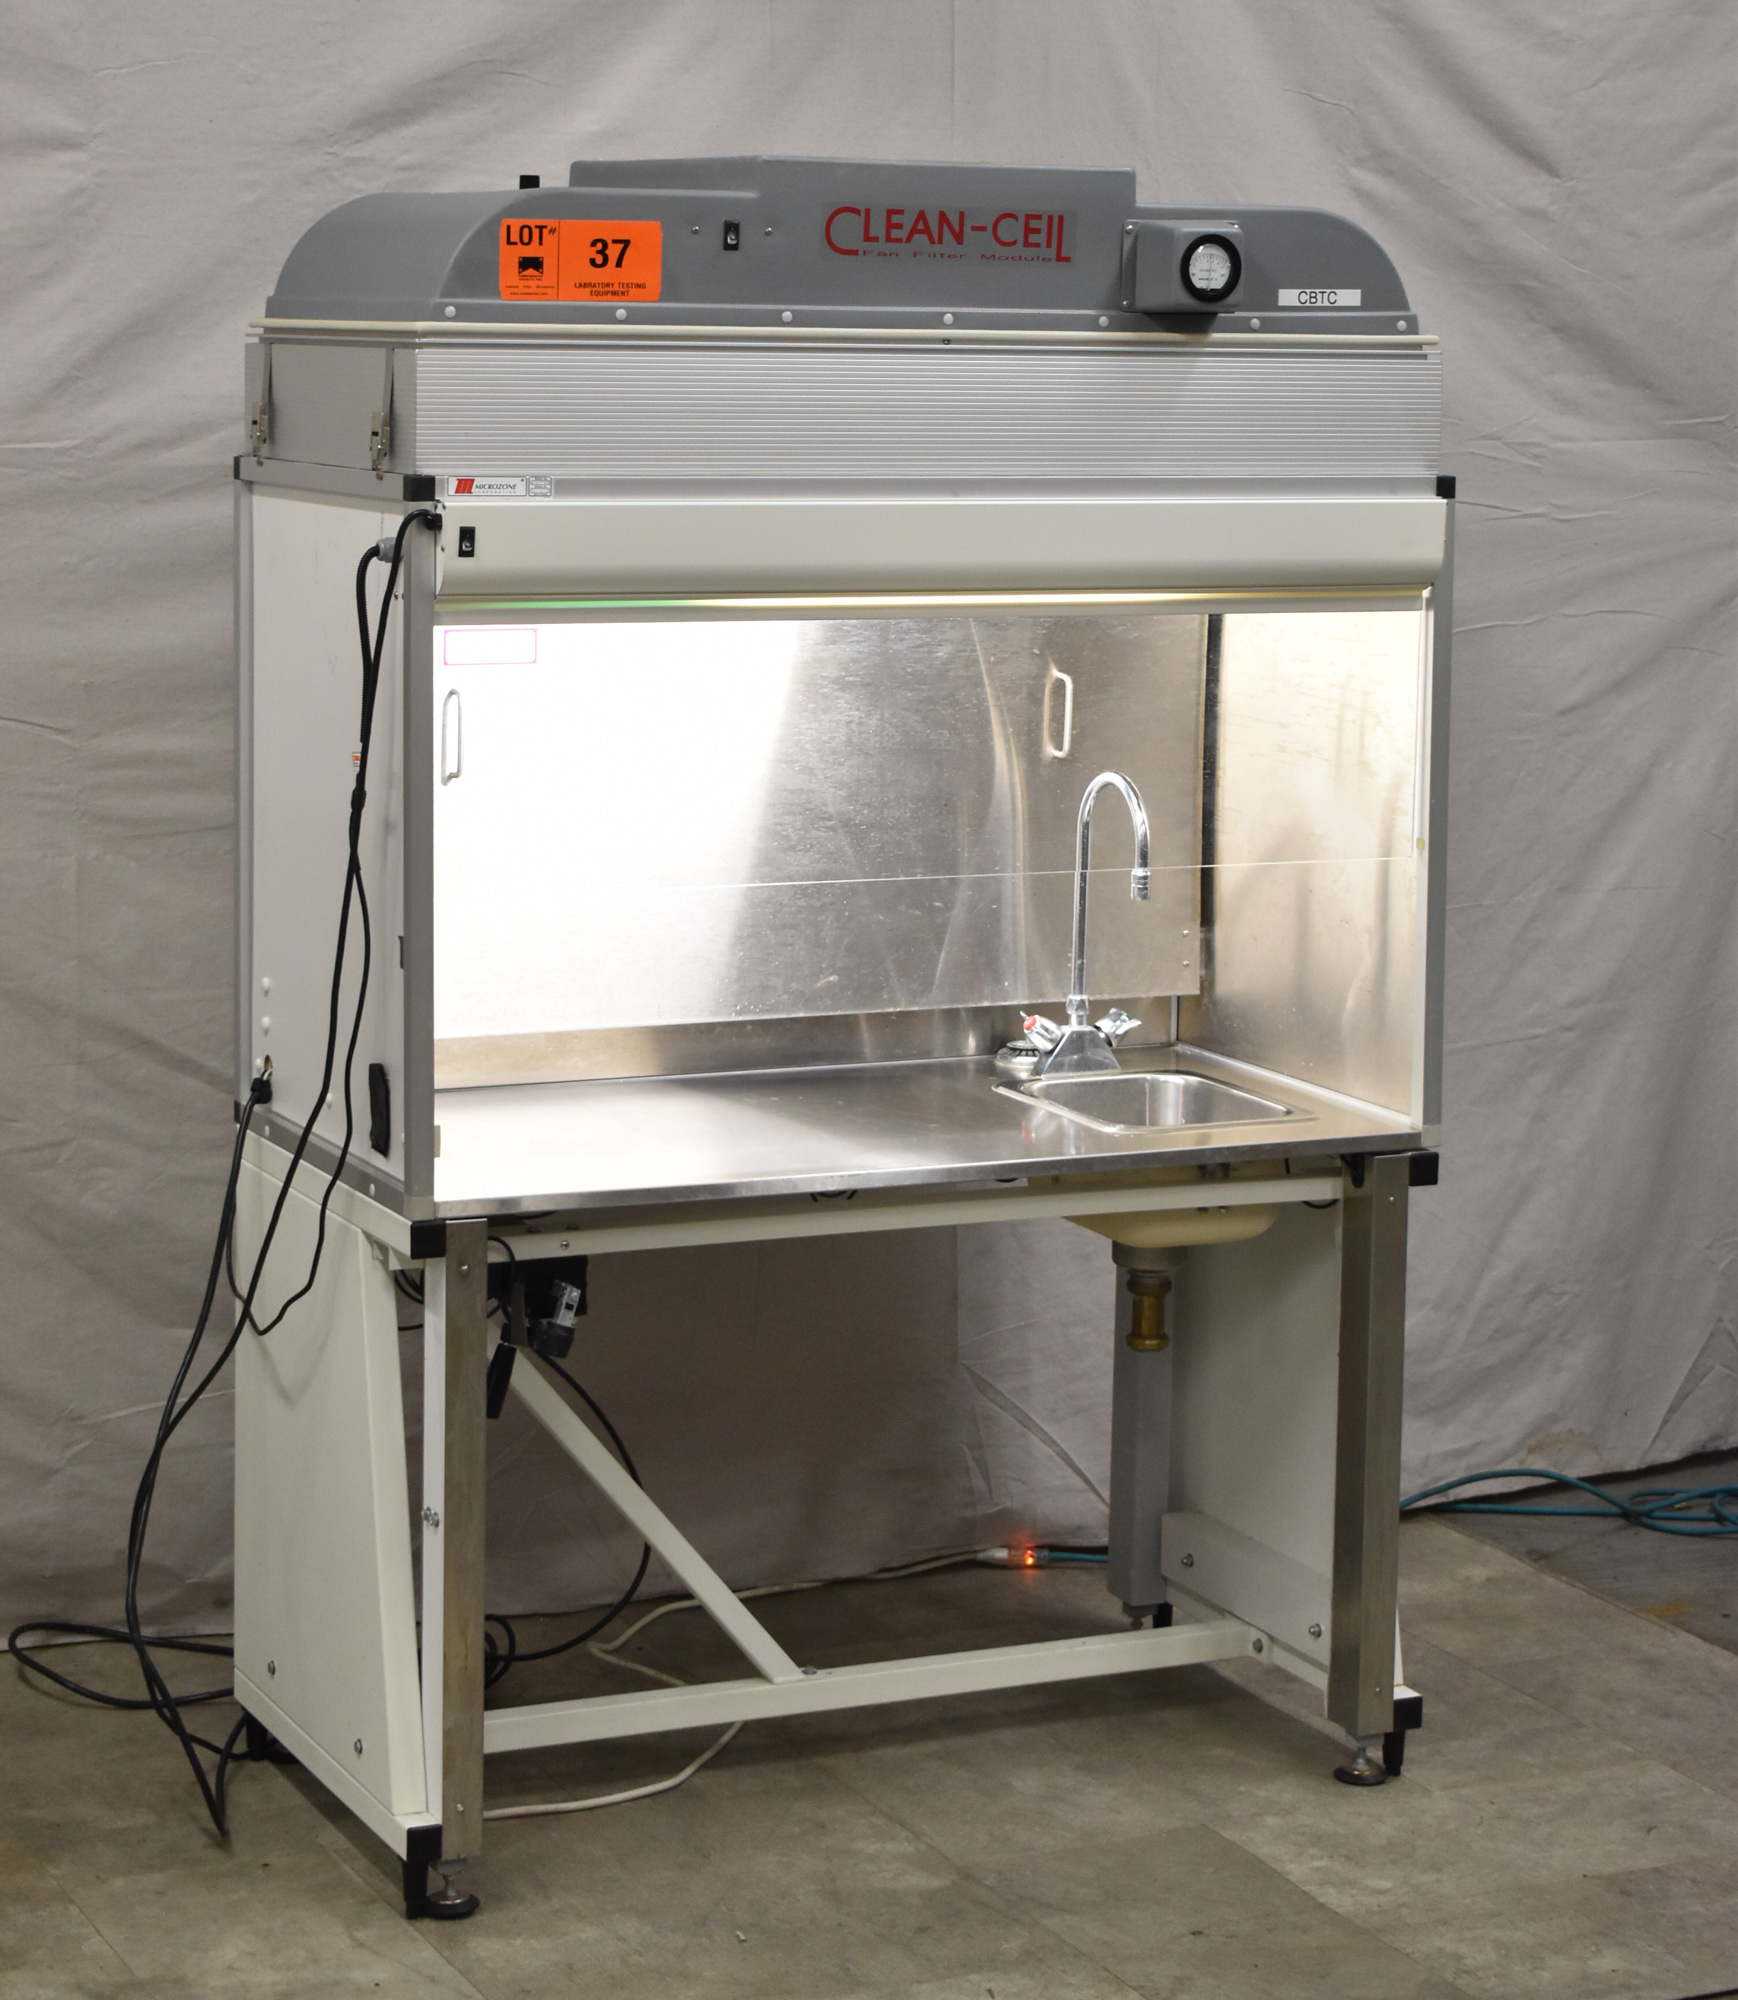 MICROZONE CLEAN-CEIL FFM-2-4--WA PORTABLE LAB EXHAUST HOOD WITH MICROZONE HEPA FILTRATION , - Image 2 of 8